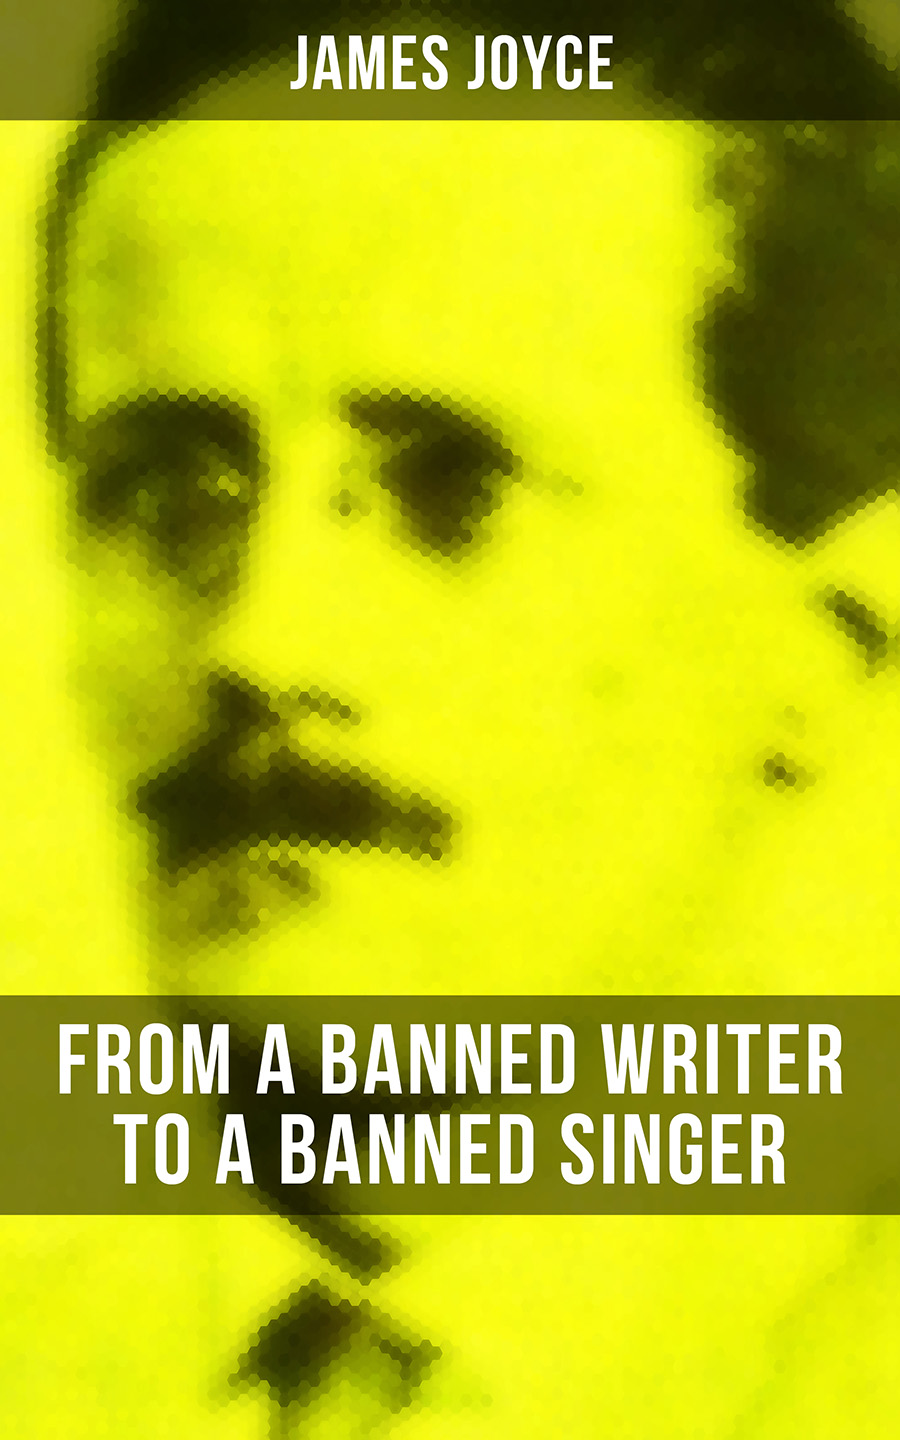 james joyce from a banned writer to a banned singer